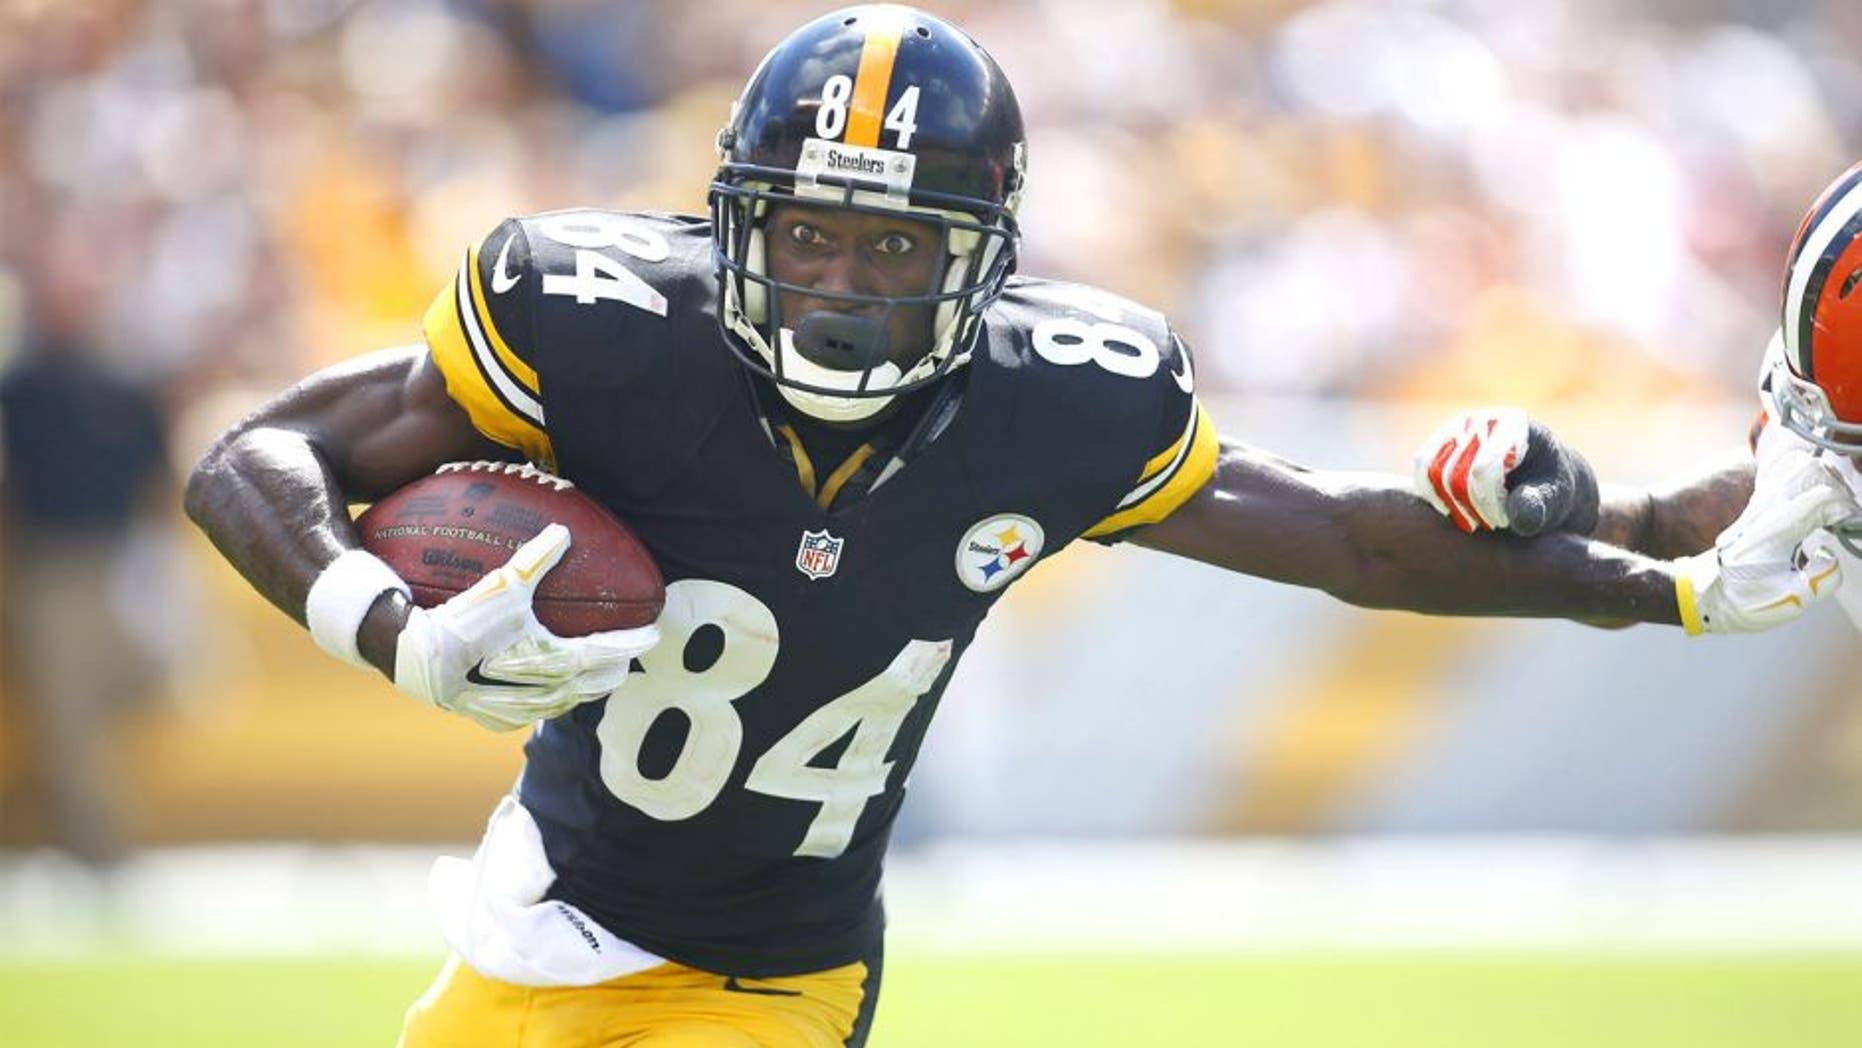 Sep 7, 2014; Pittsburgh, PA, USA; Pittsburgh Steelers wide receiver Antonio Brown (84) runs after a pass reception against the Cleveland Browns during the second quarter at Heinz Field. Mandatory Credit: Charles LeClaire-USA TODAY Sports